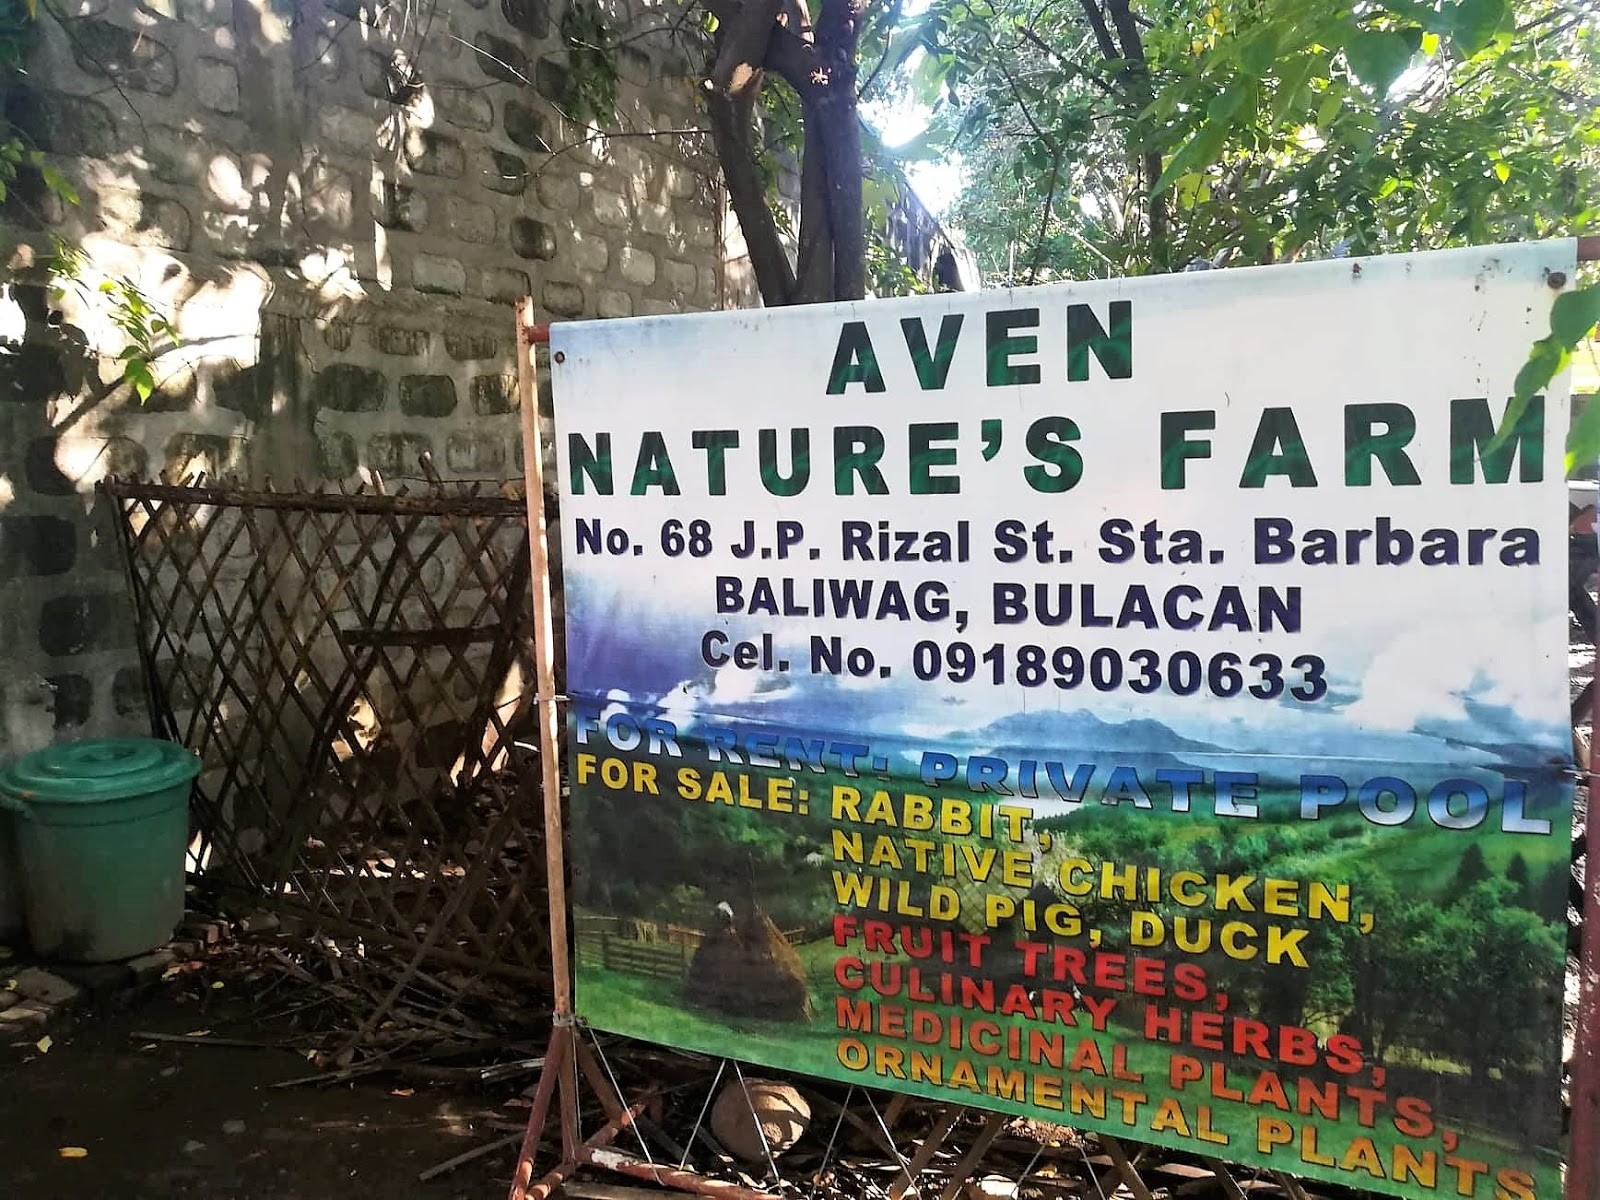 A Quick Visit at Aven Nature's Farm and The Greenery